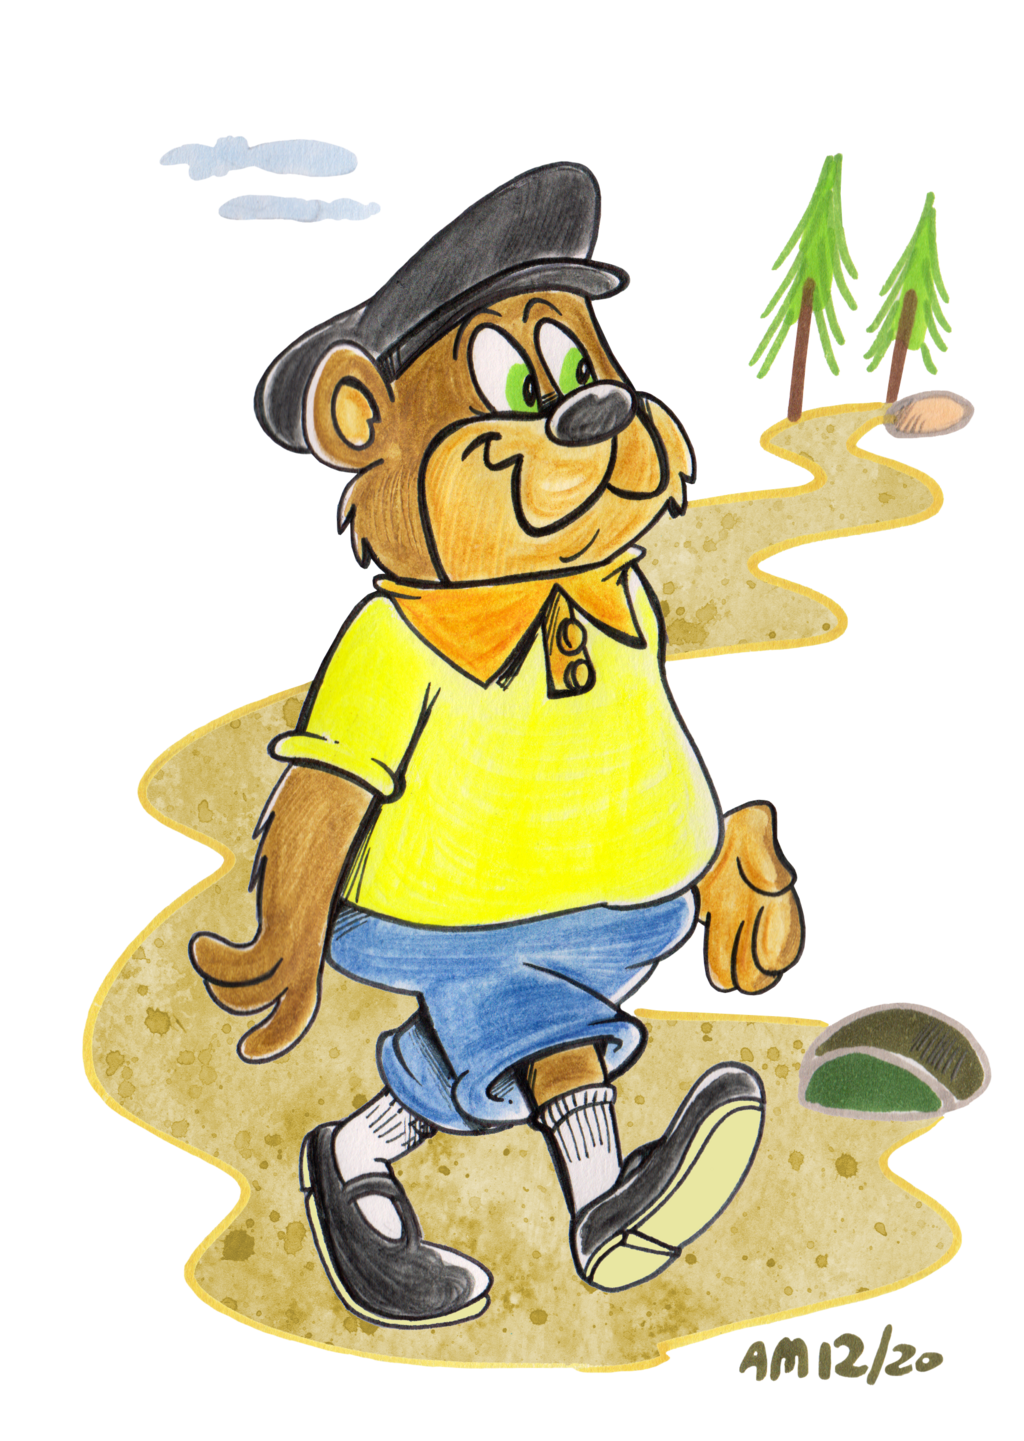 Most recent image: Al Bear walking in the woods